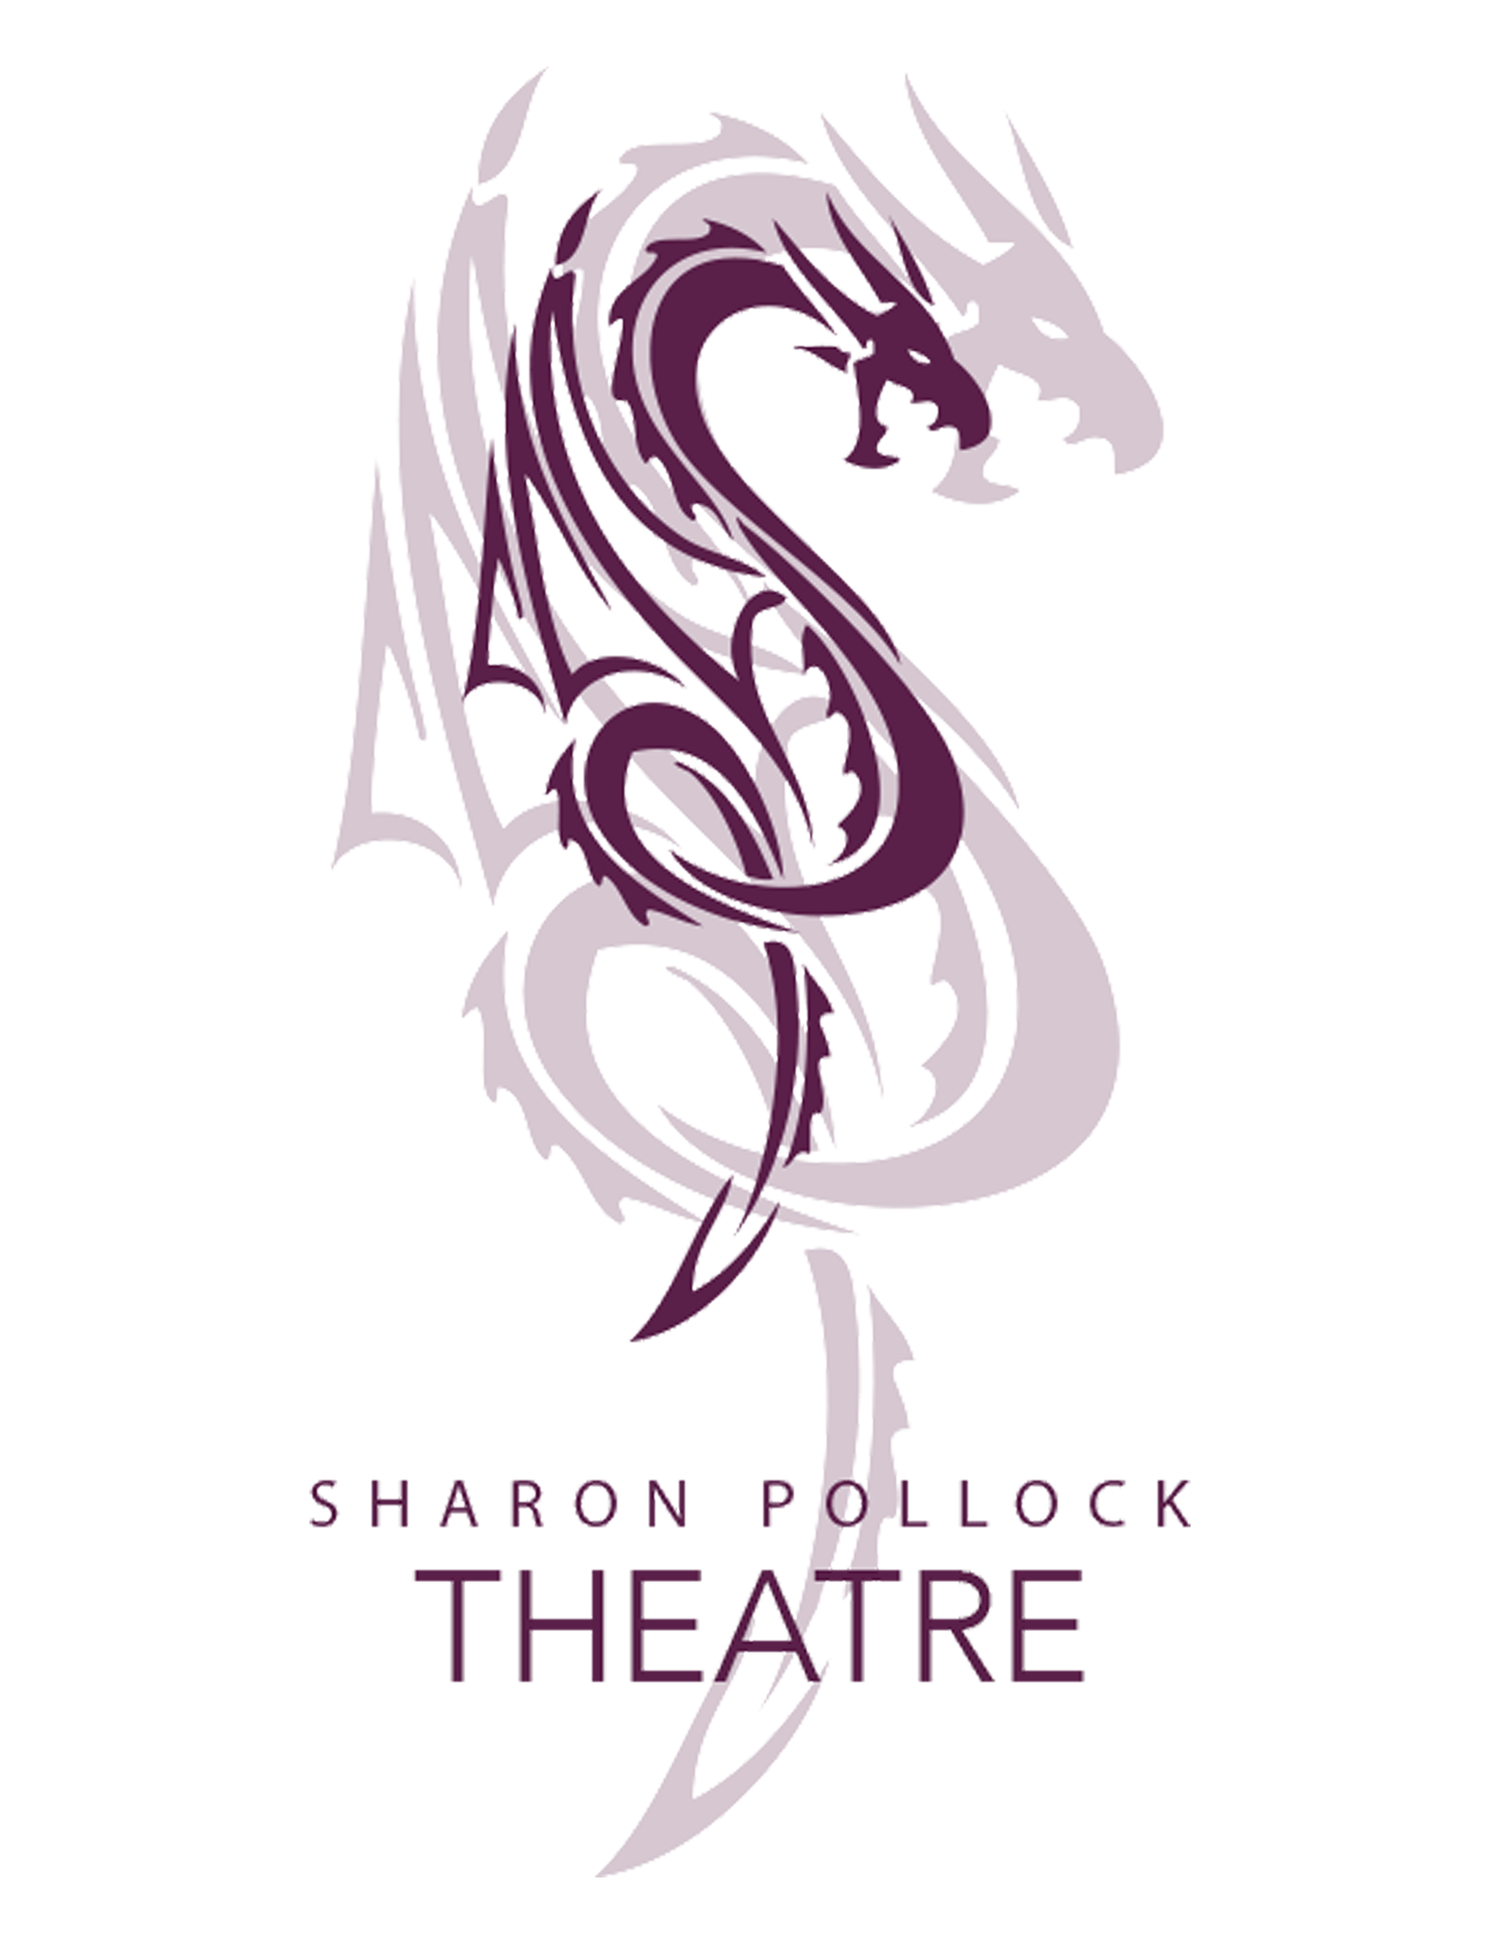 Sharon Pollock Theatre